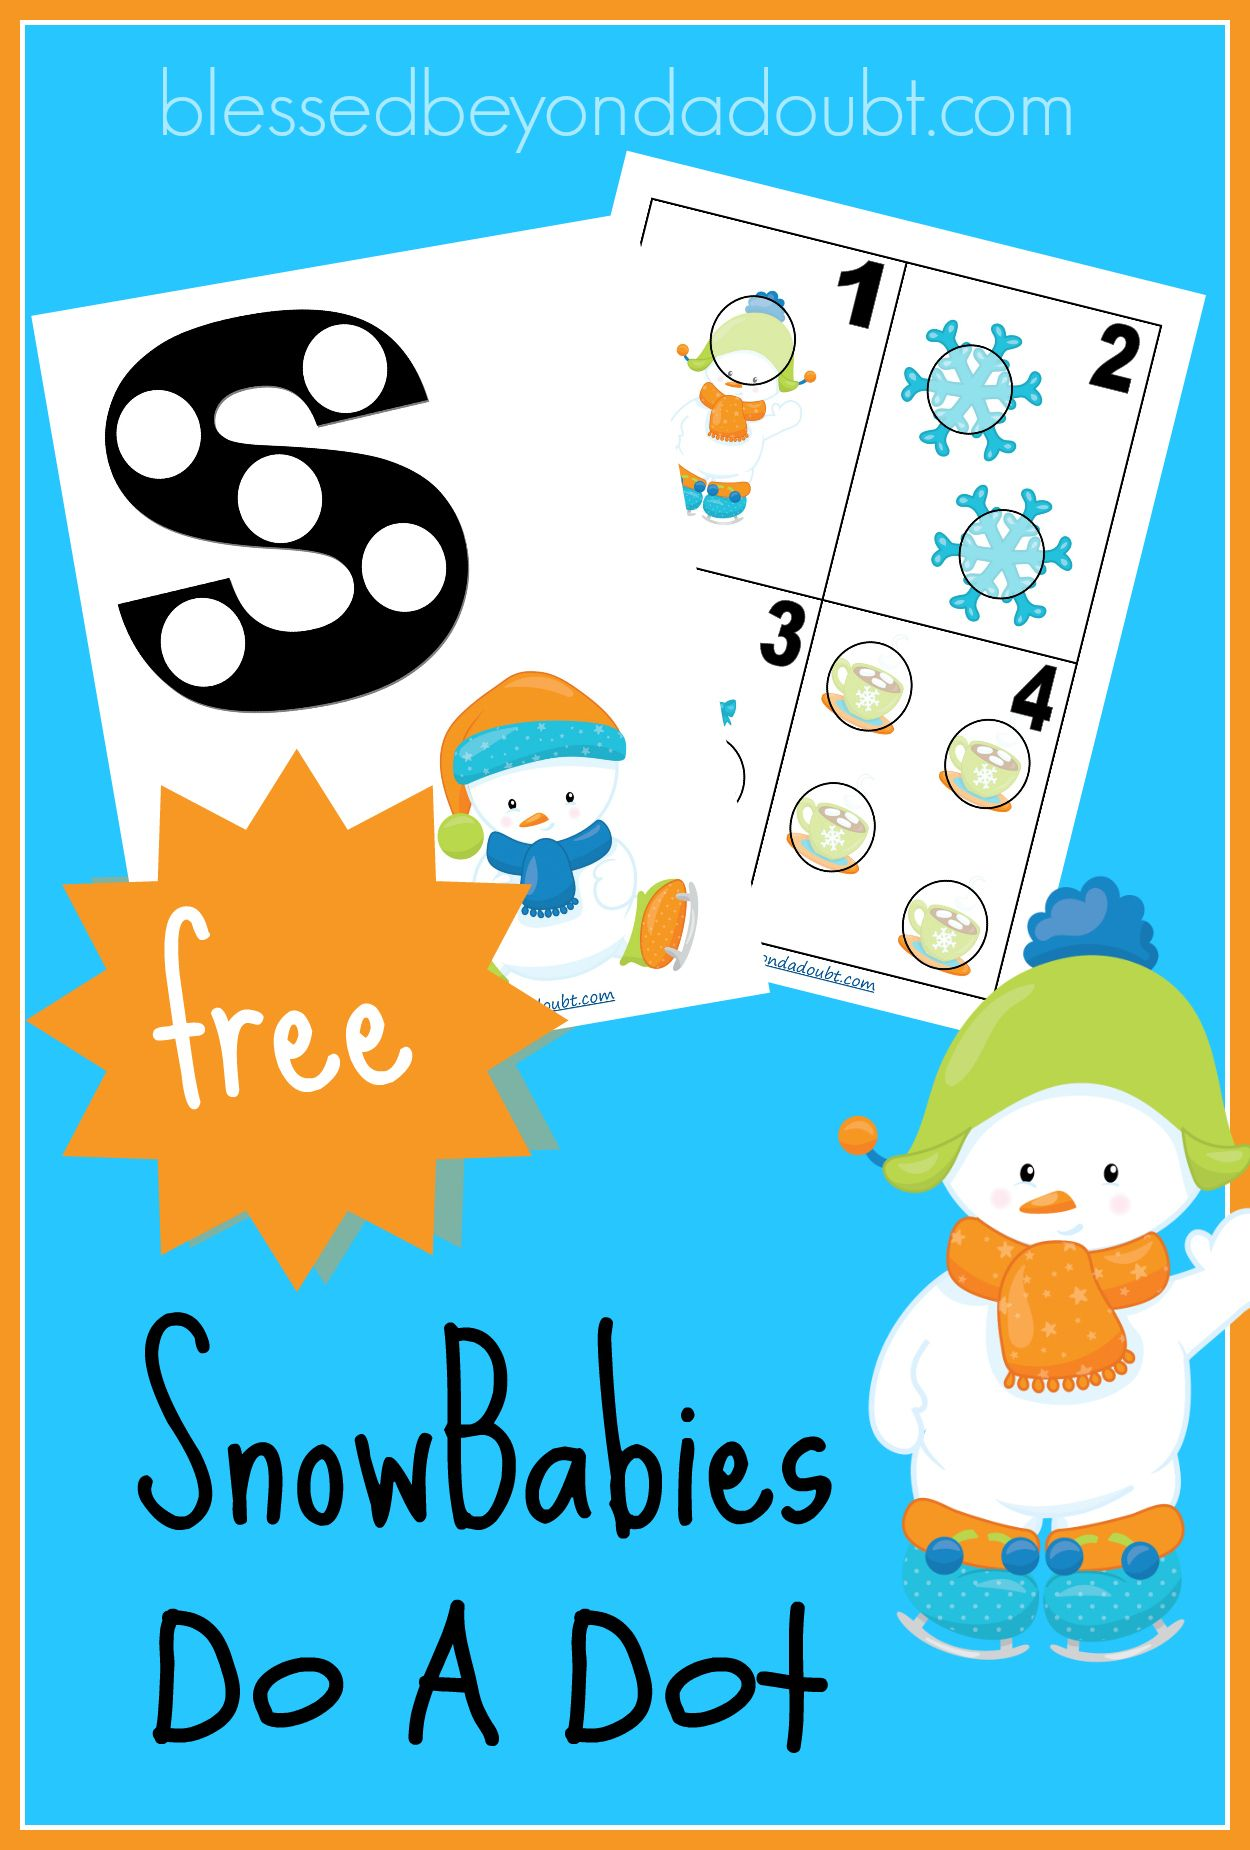 Free Snowbabies Fun Do A Dot